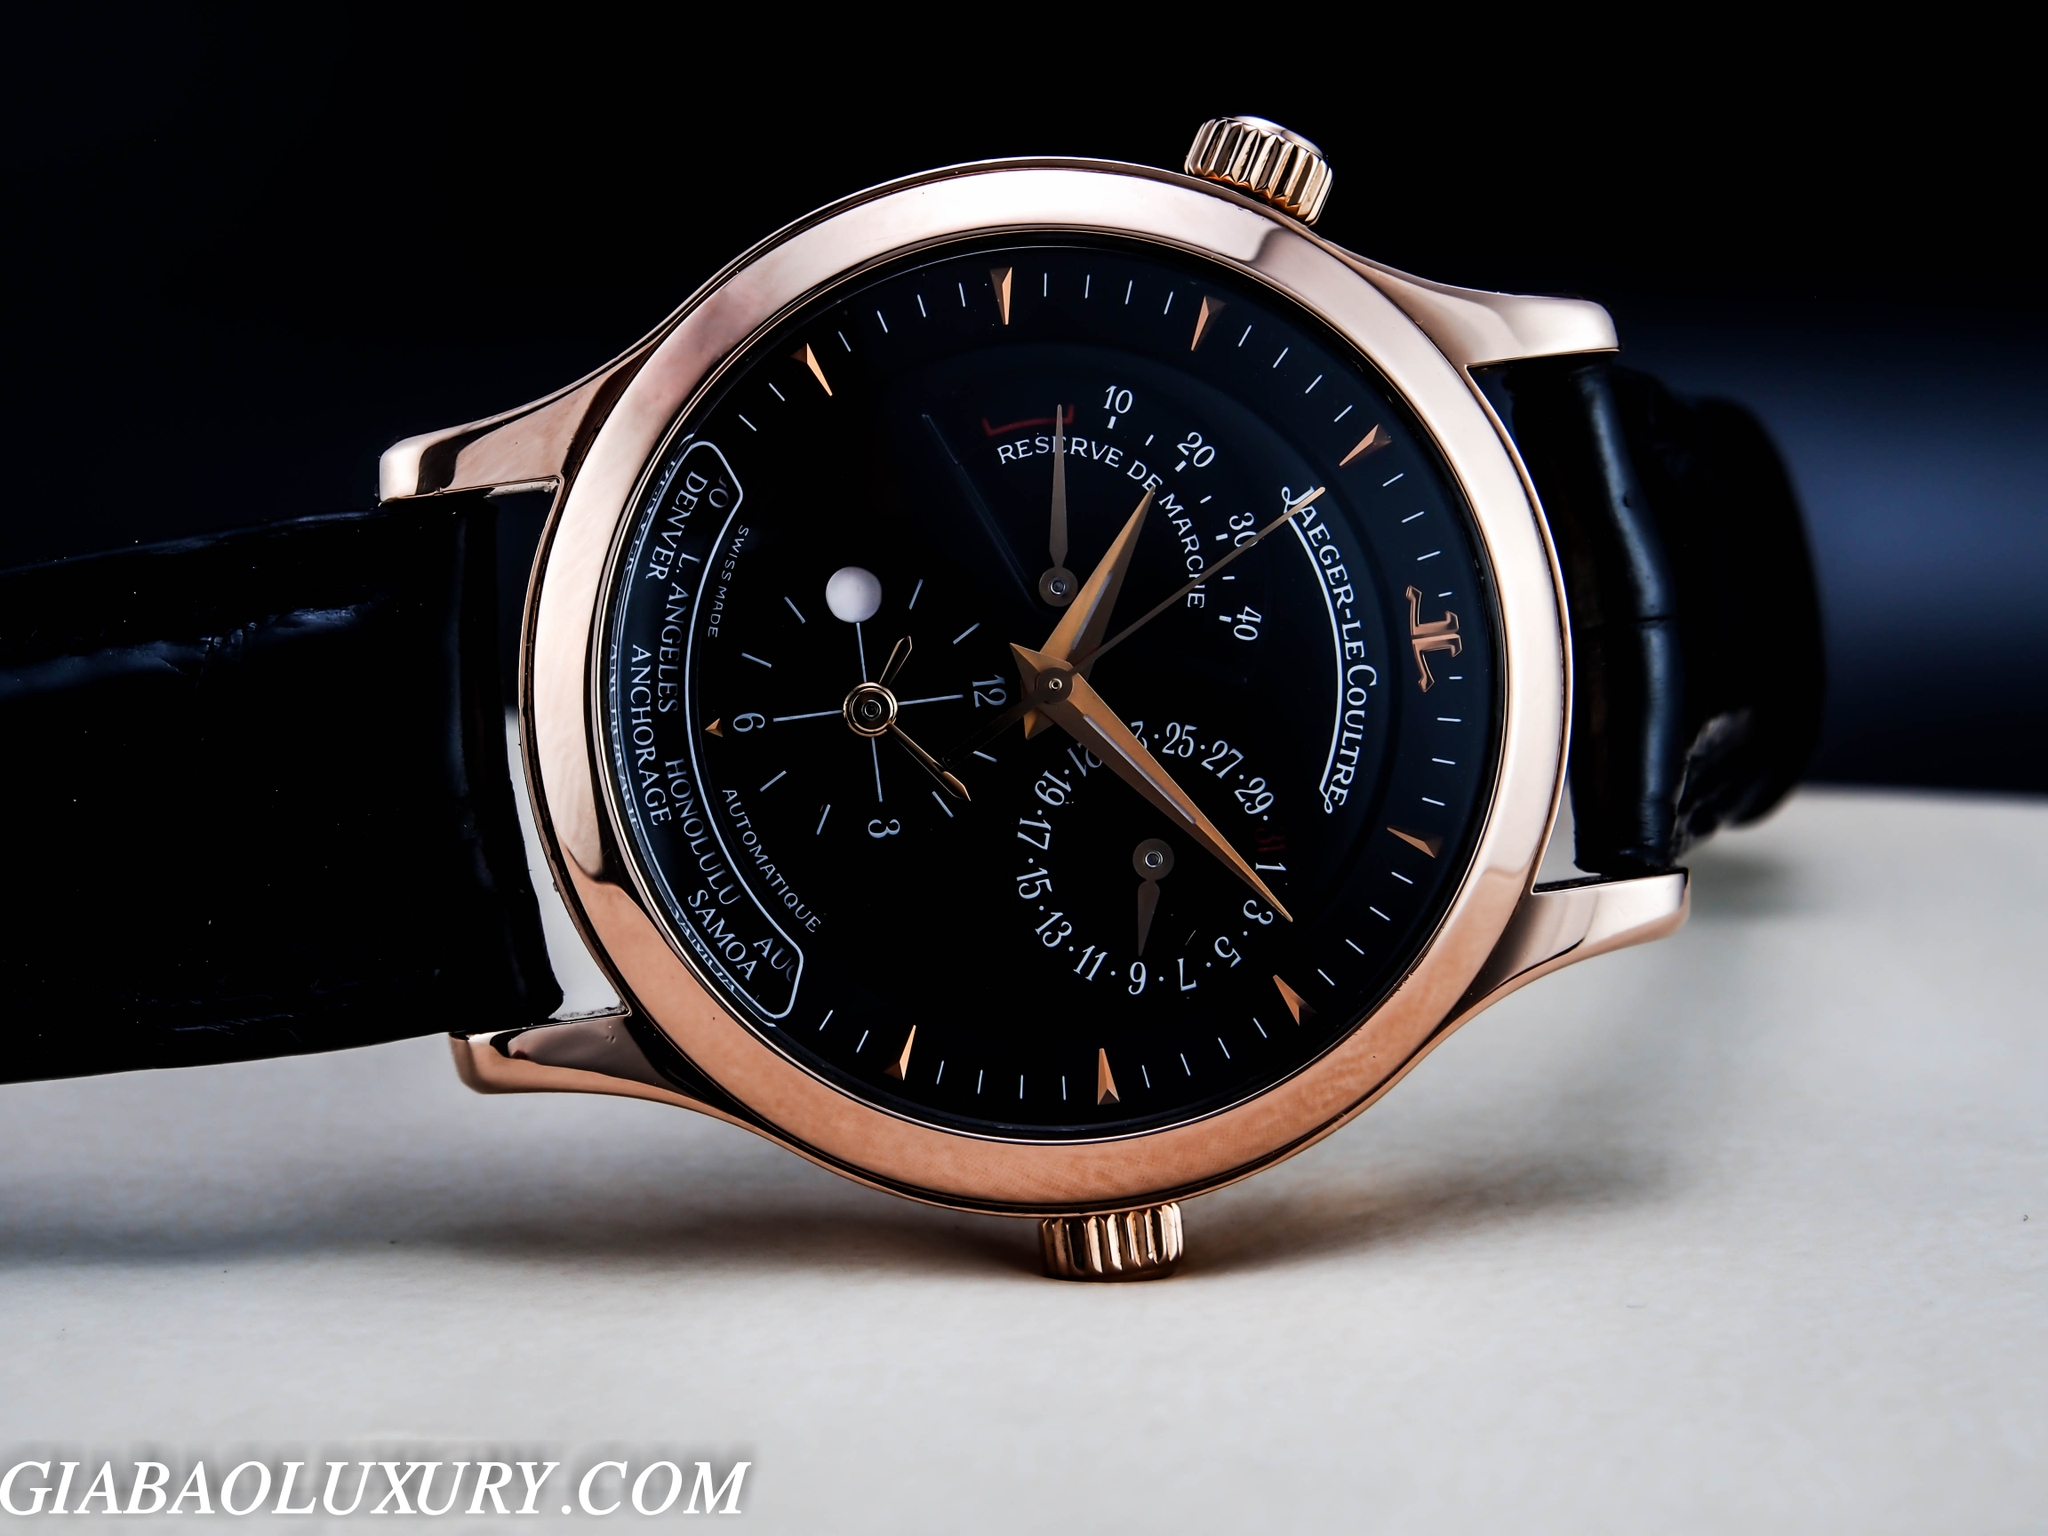 REVIEW ĐỒNG HỒ JAEGER - LECOULTRE MASTER CONTROL 1000 HOUR GEOGRAPHIC  18K  ROSE GOLD BỞI GIA BẢO LUXURY WATCH